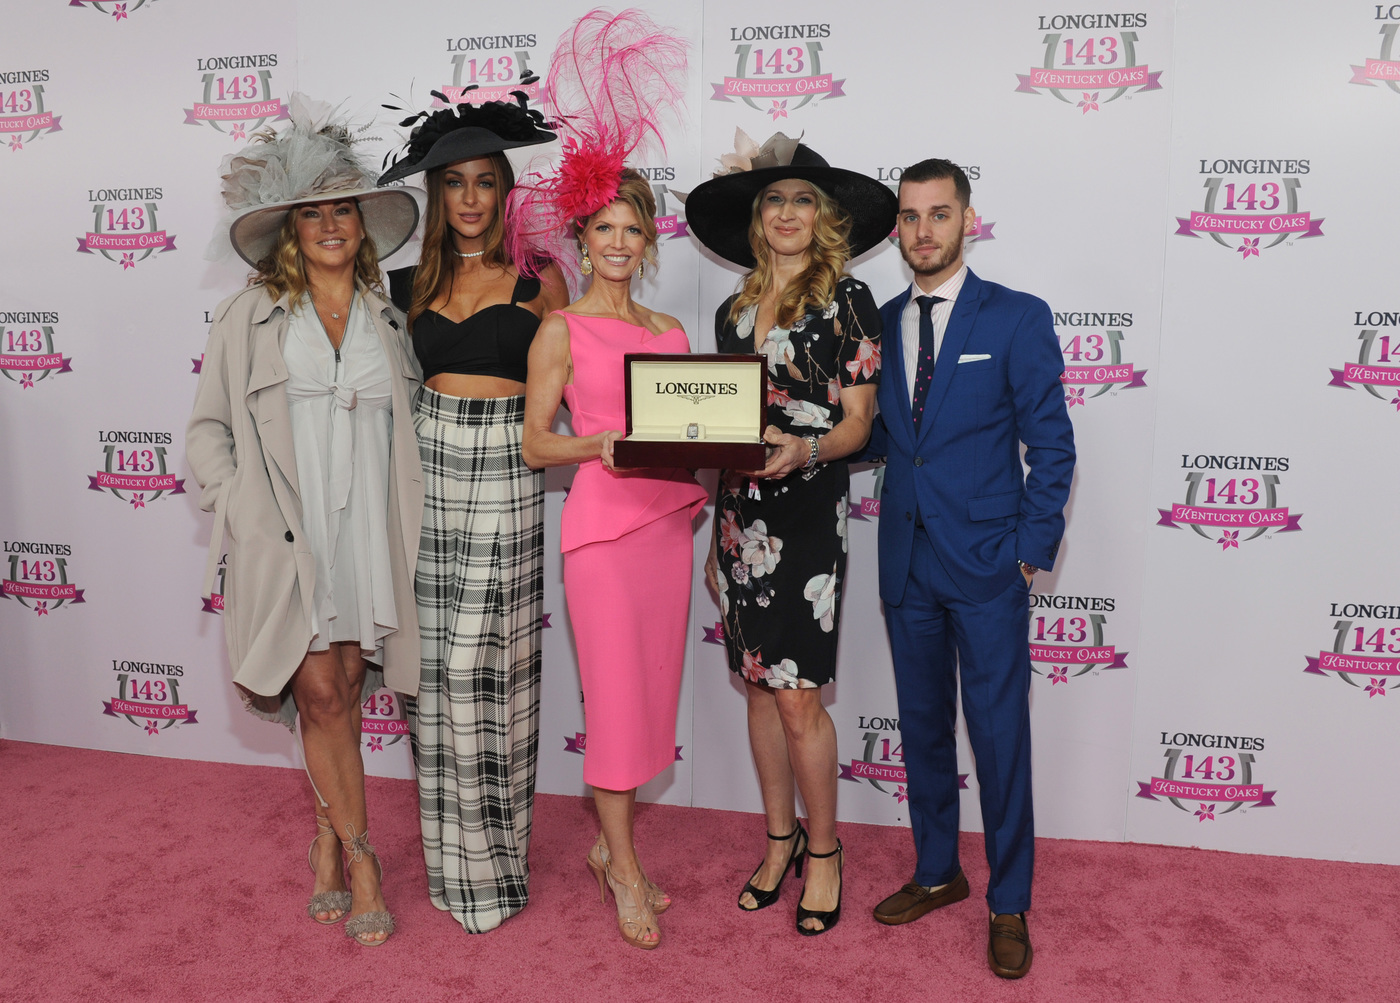 Longines Flat Racing Event: Elegance celebrated in grand style at the 143rd Longines Kentucky Oaks 5